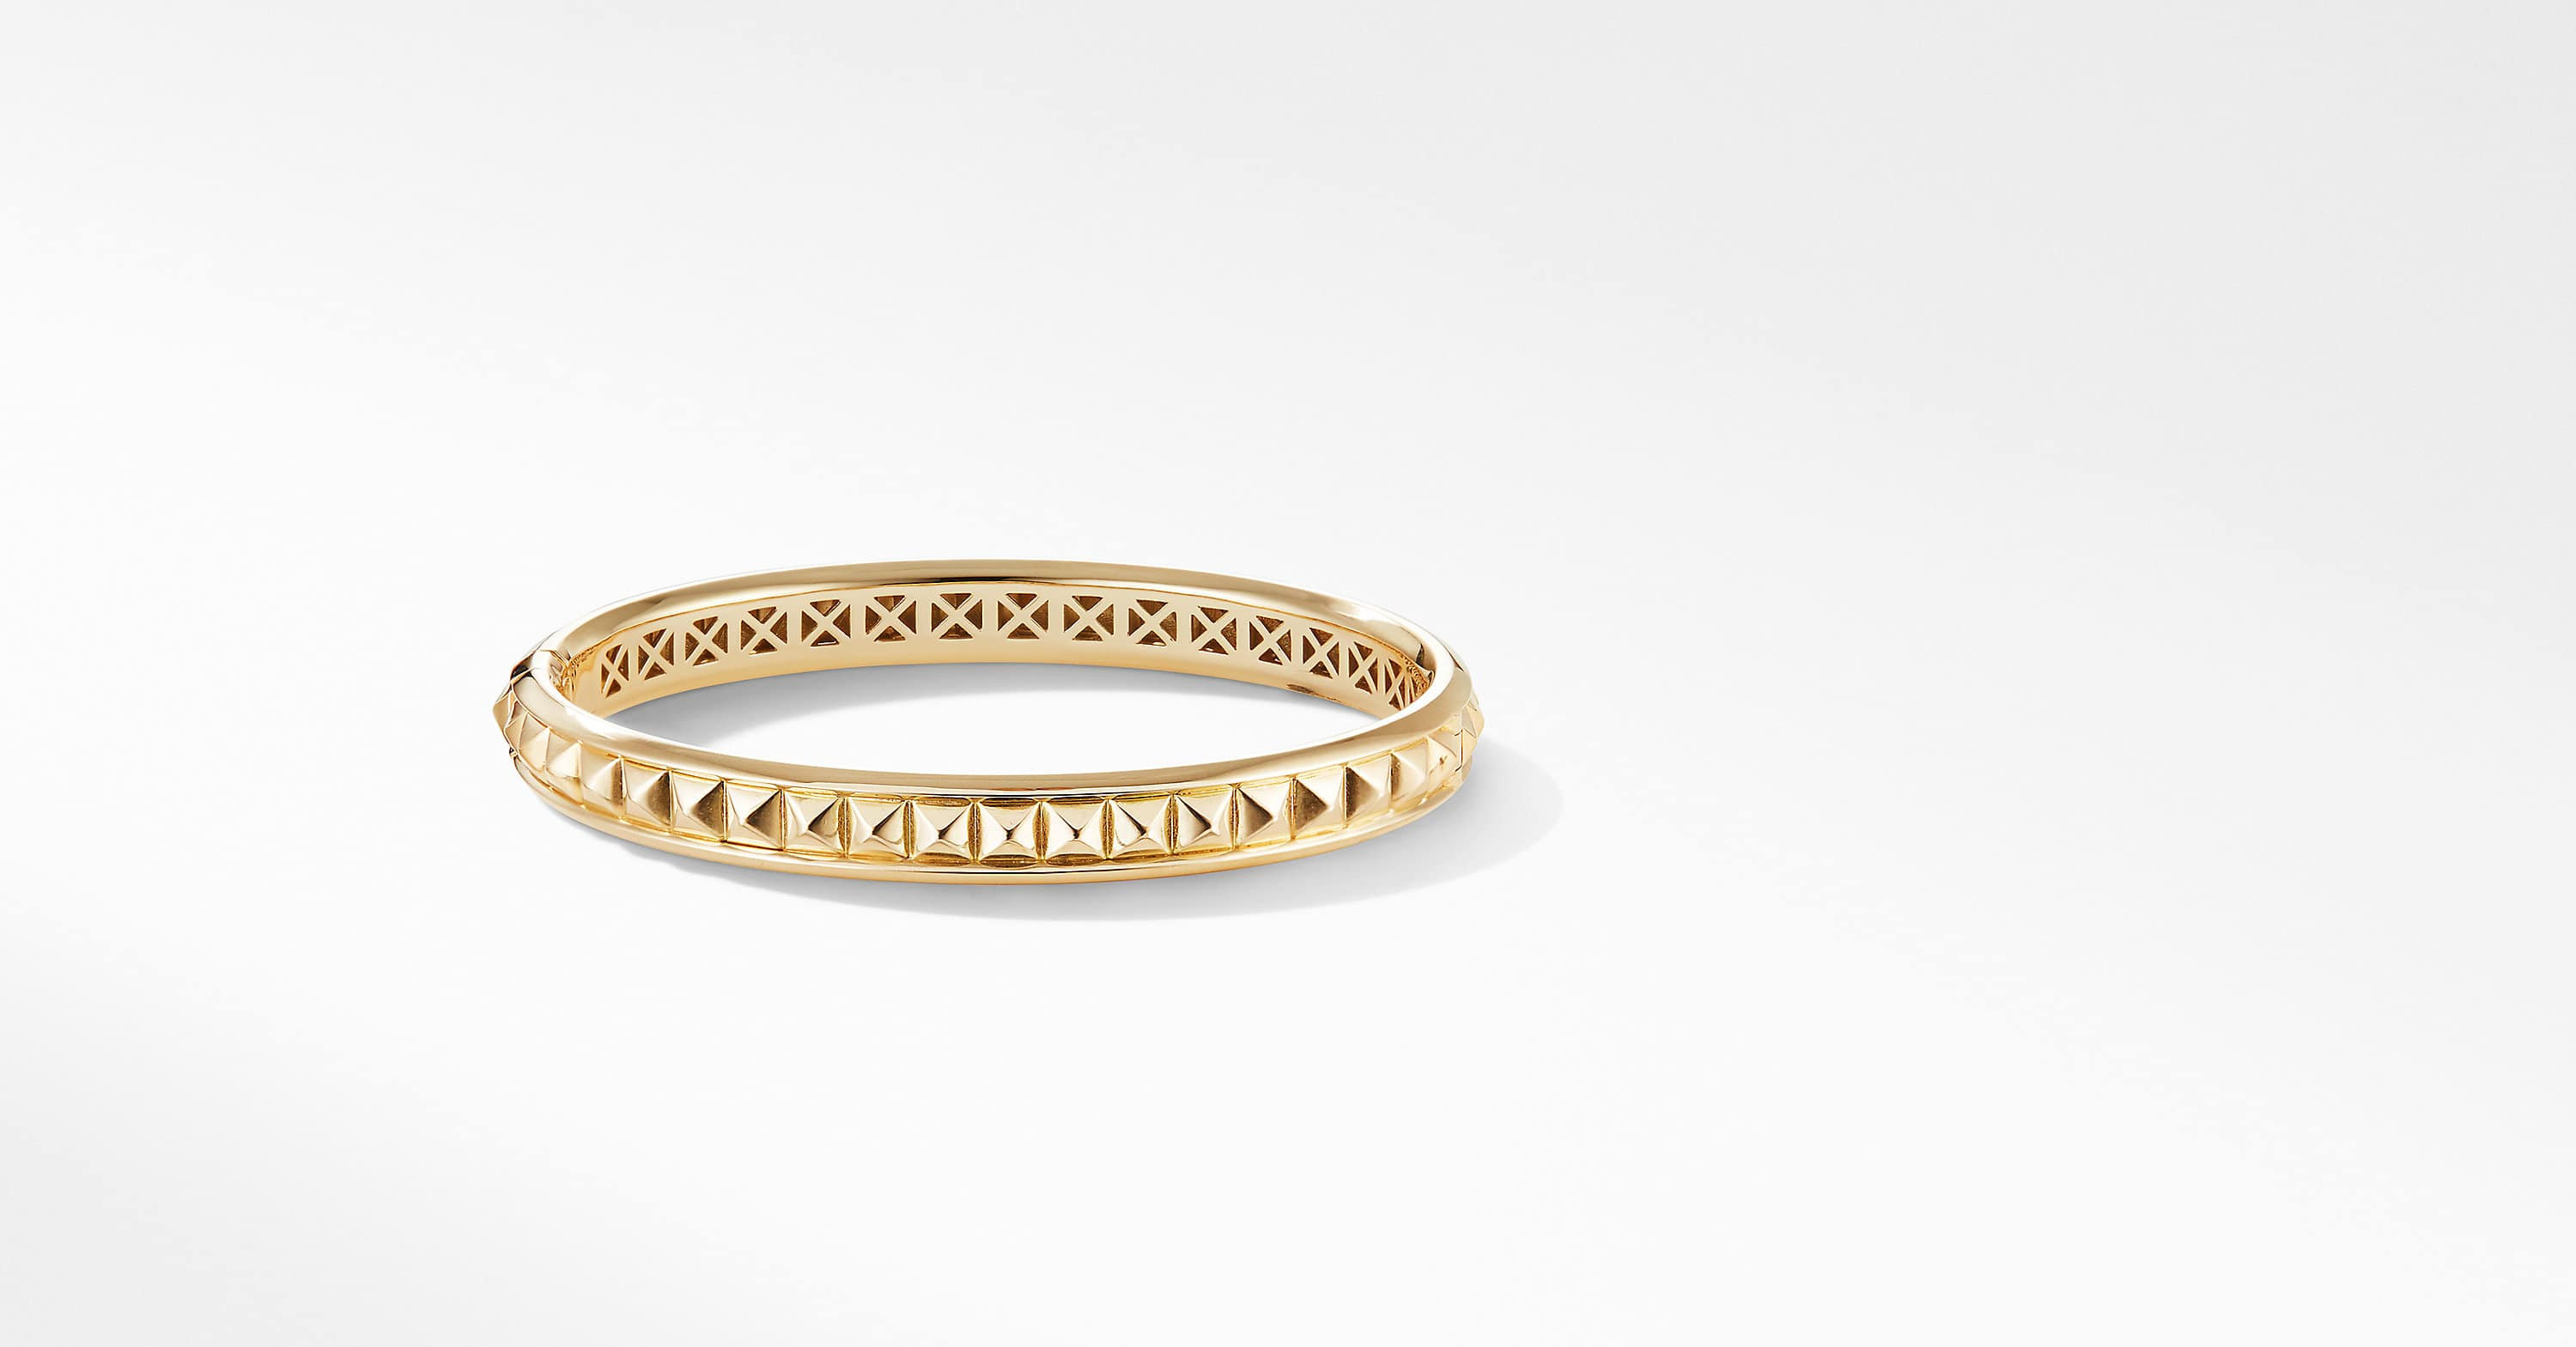 Modern Renaissance Pyramid Bracelet in 18K Yellow Gold